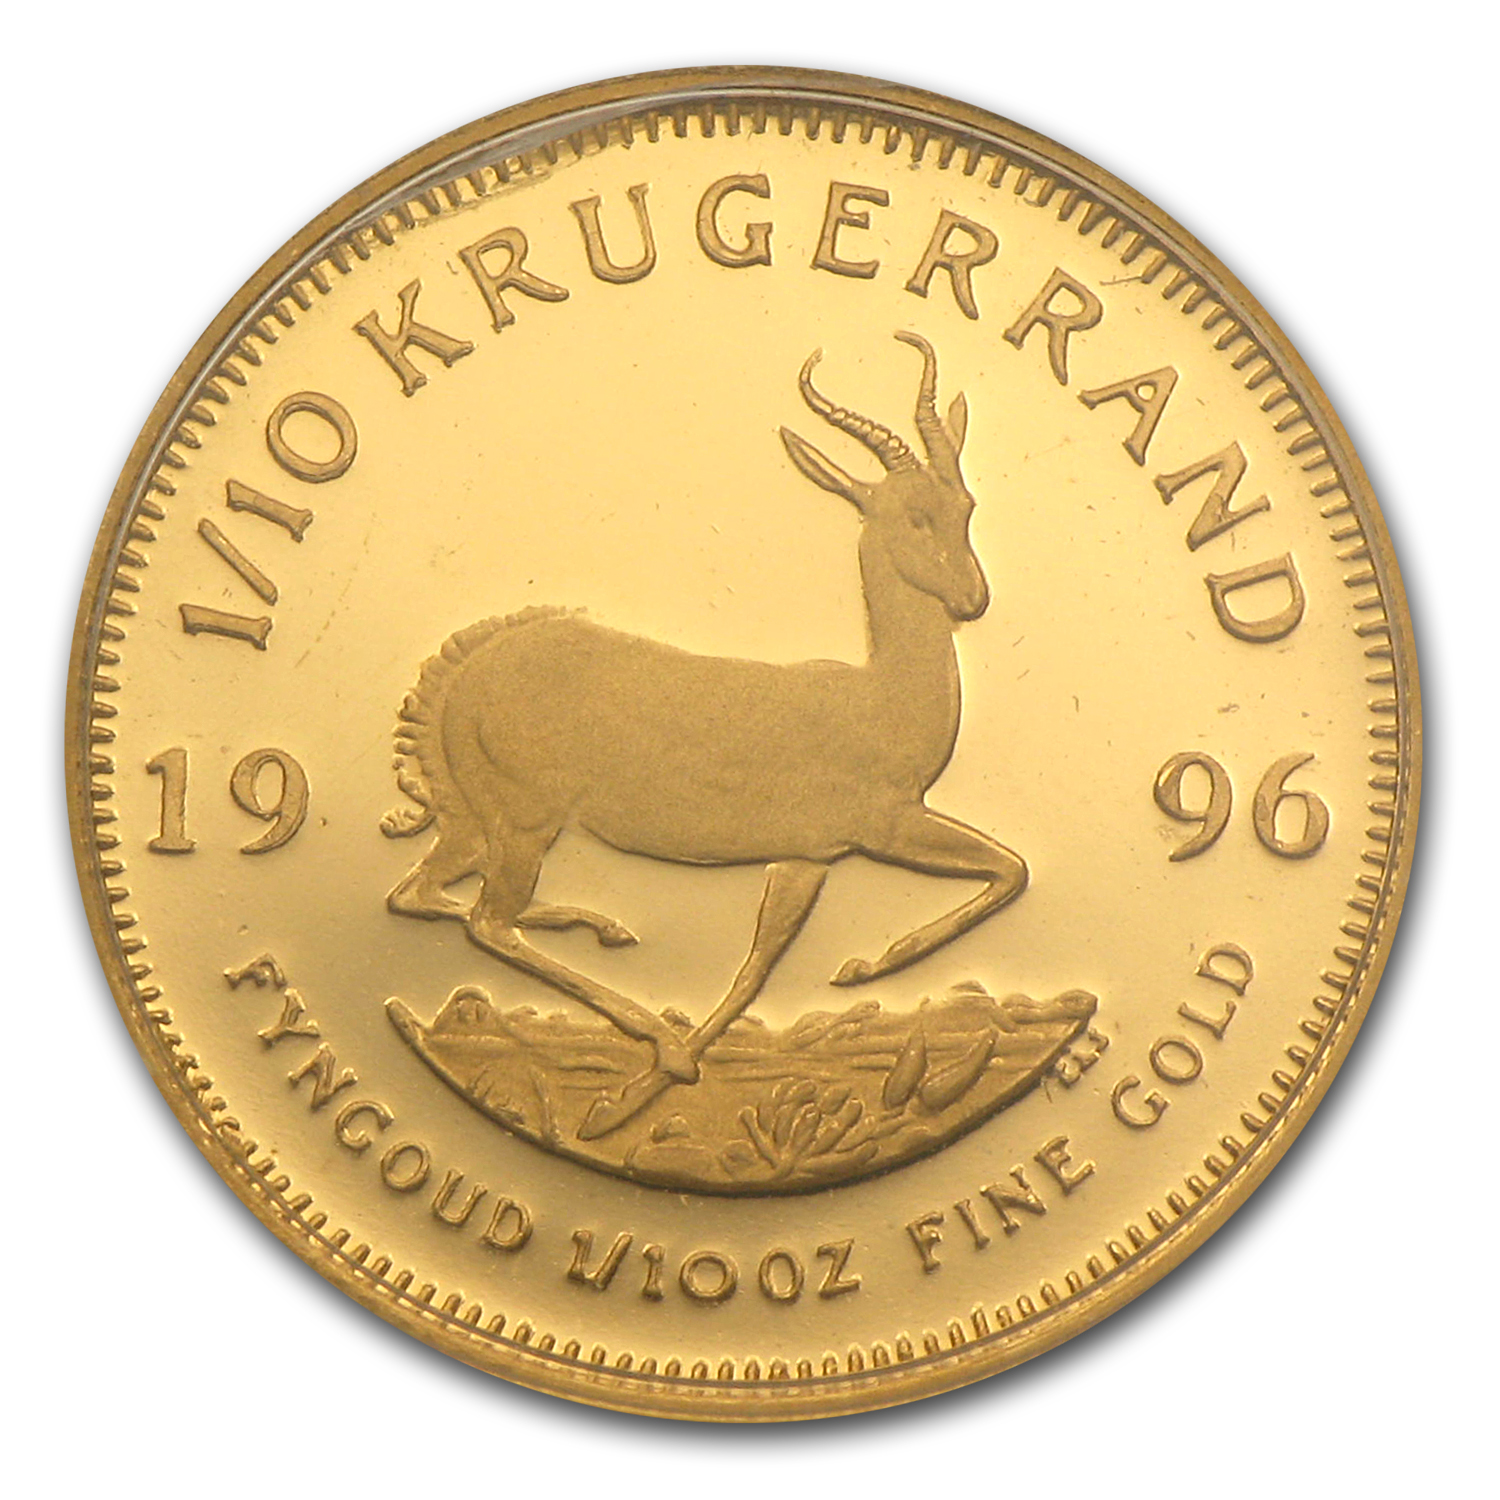 1996 South Africa 1/10 oz Proof Gold Krugerrand